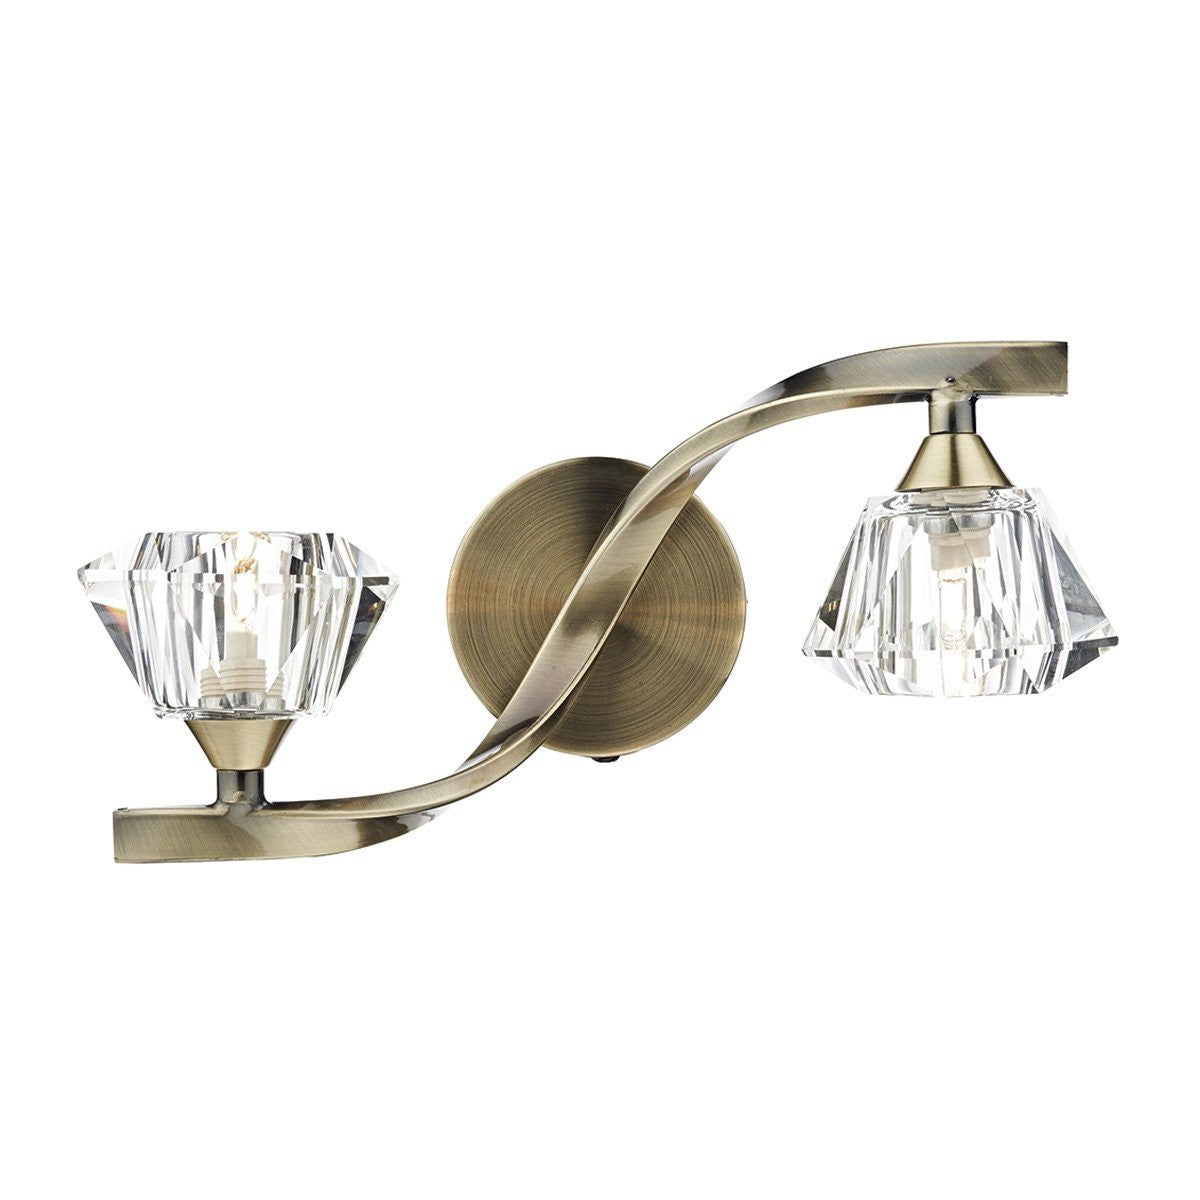 Mile End Antique Brass 2 Lamp Crystal Wall Bracket - ID 5997